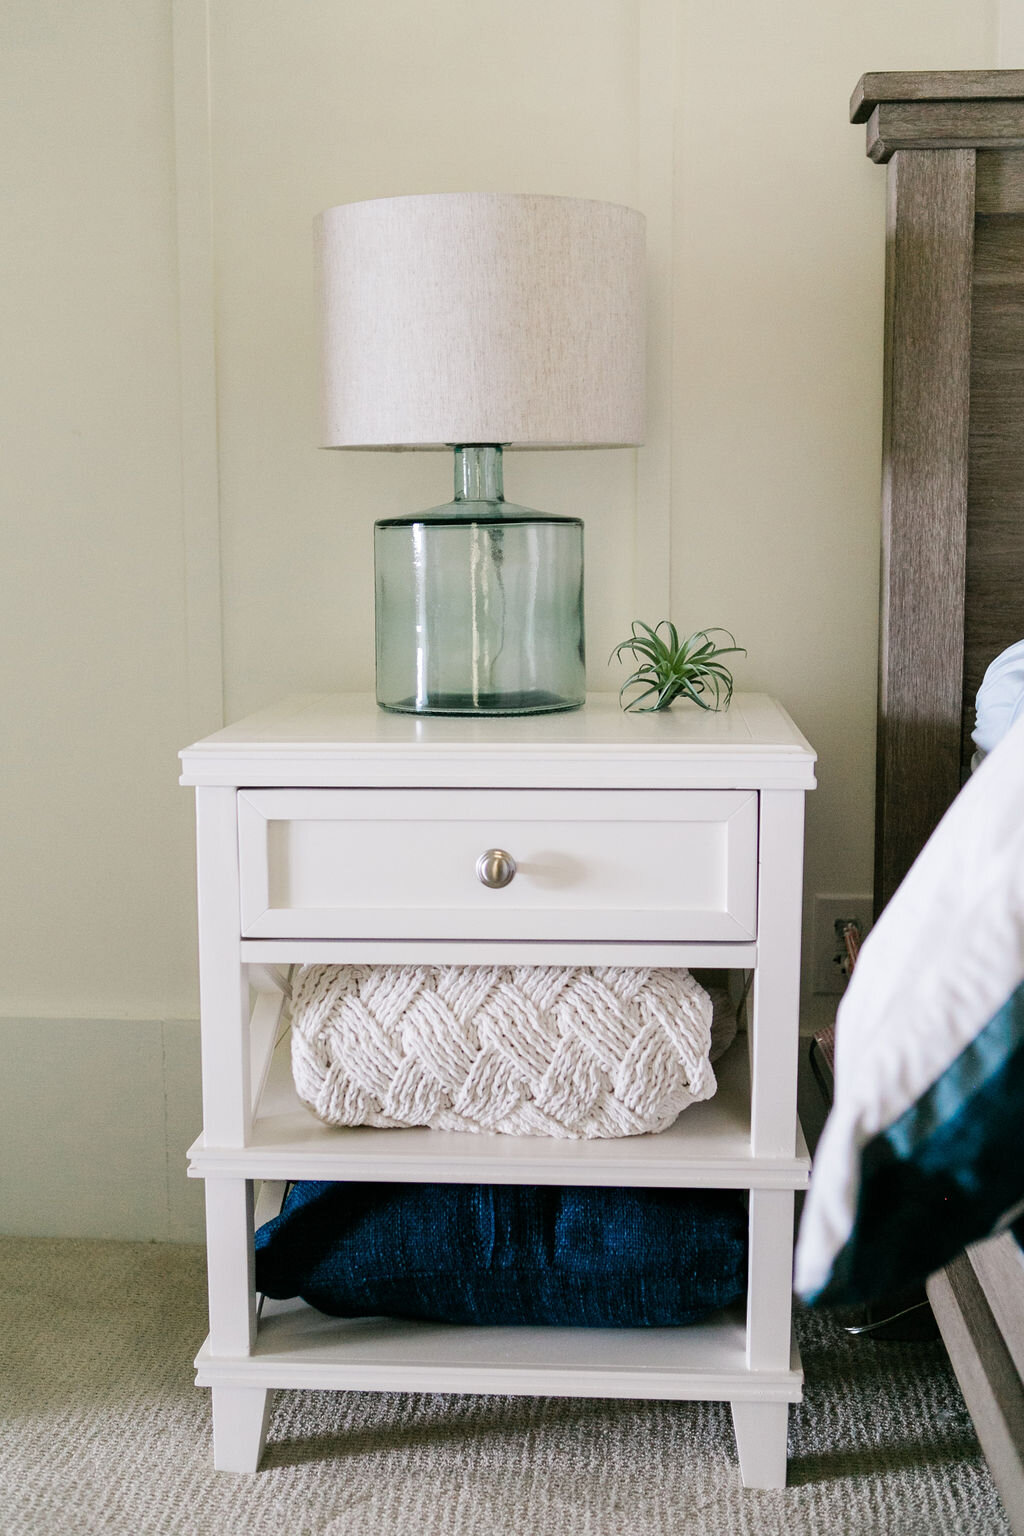 White wood nightstands with decorative throw blankets and a soft blue glass side table lamp.